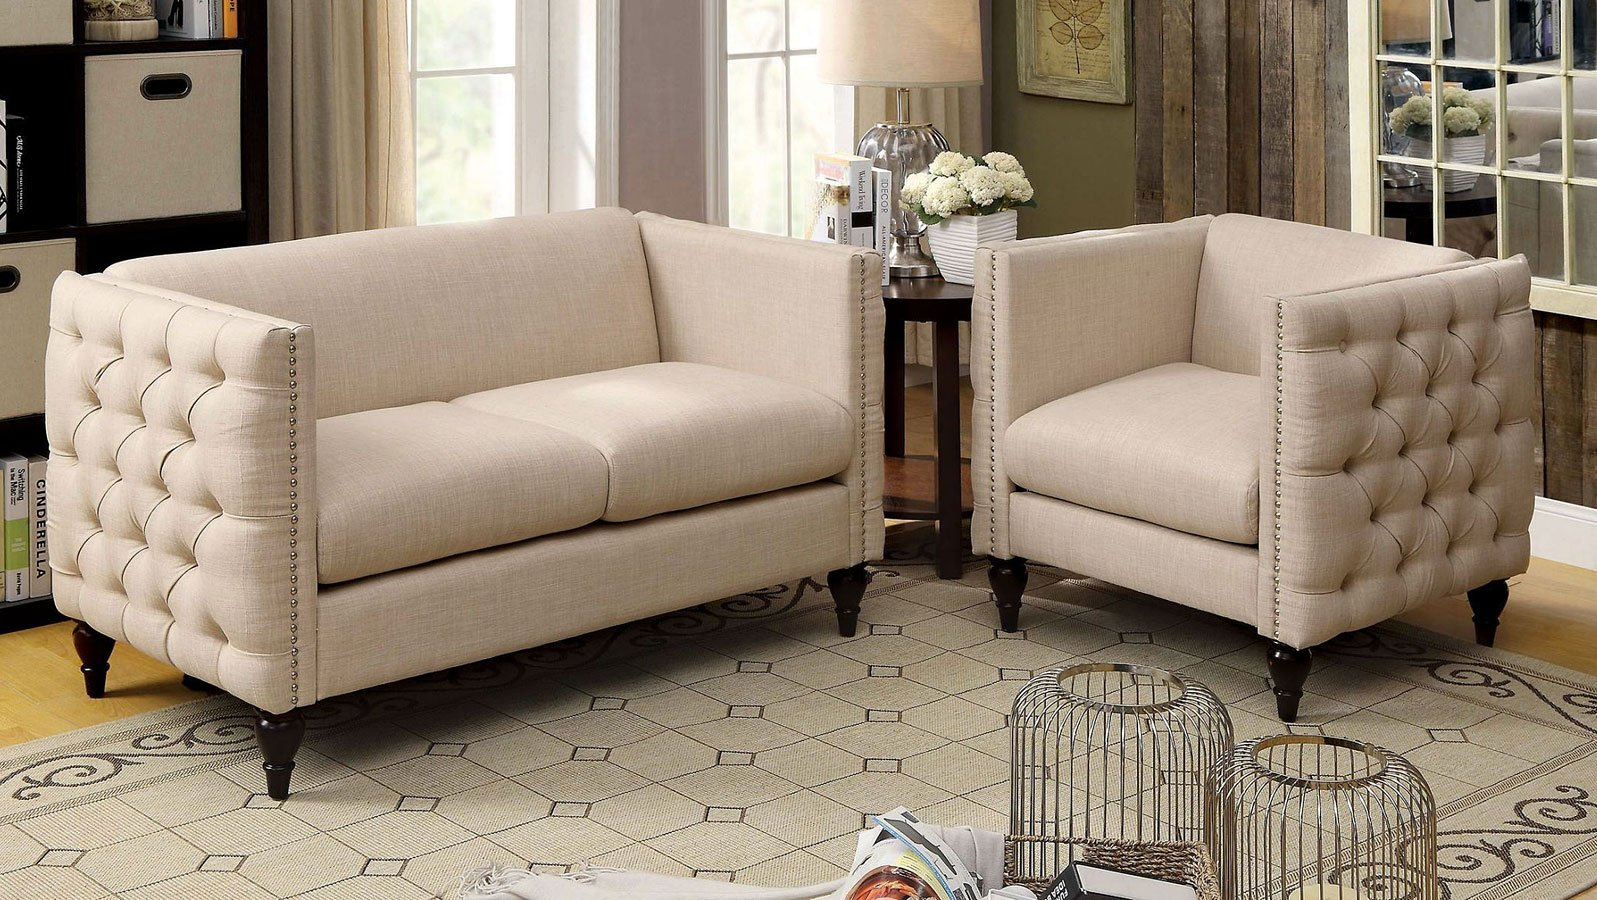 Emer beige living room set